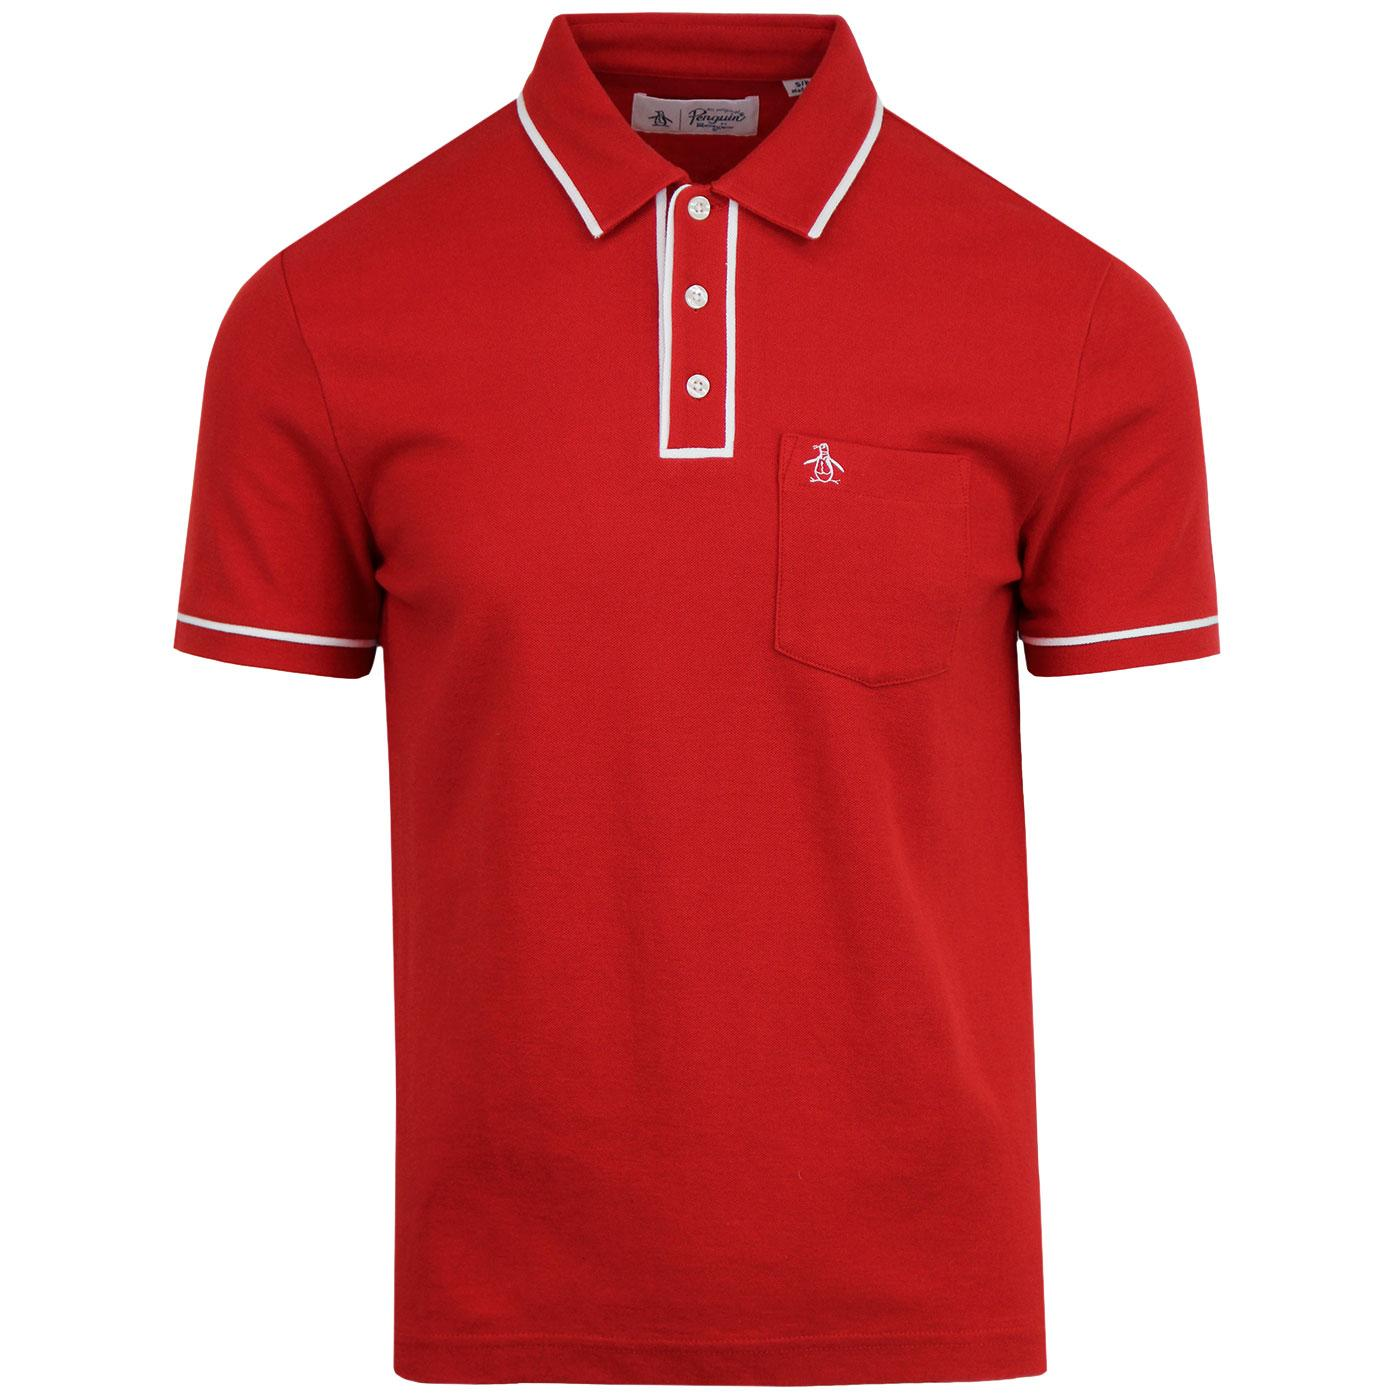 Earl ORIGINAL PENGUIN Retro Mod Tipped Polo Top SR